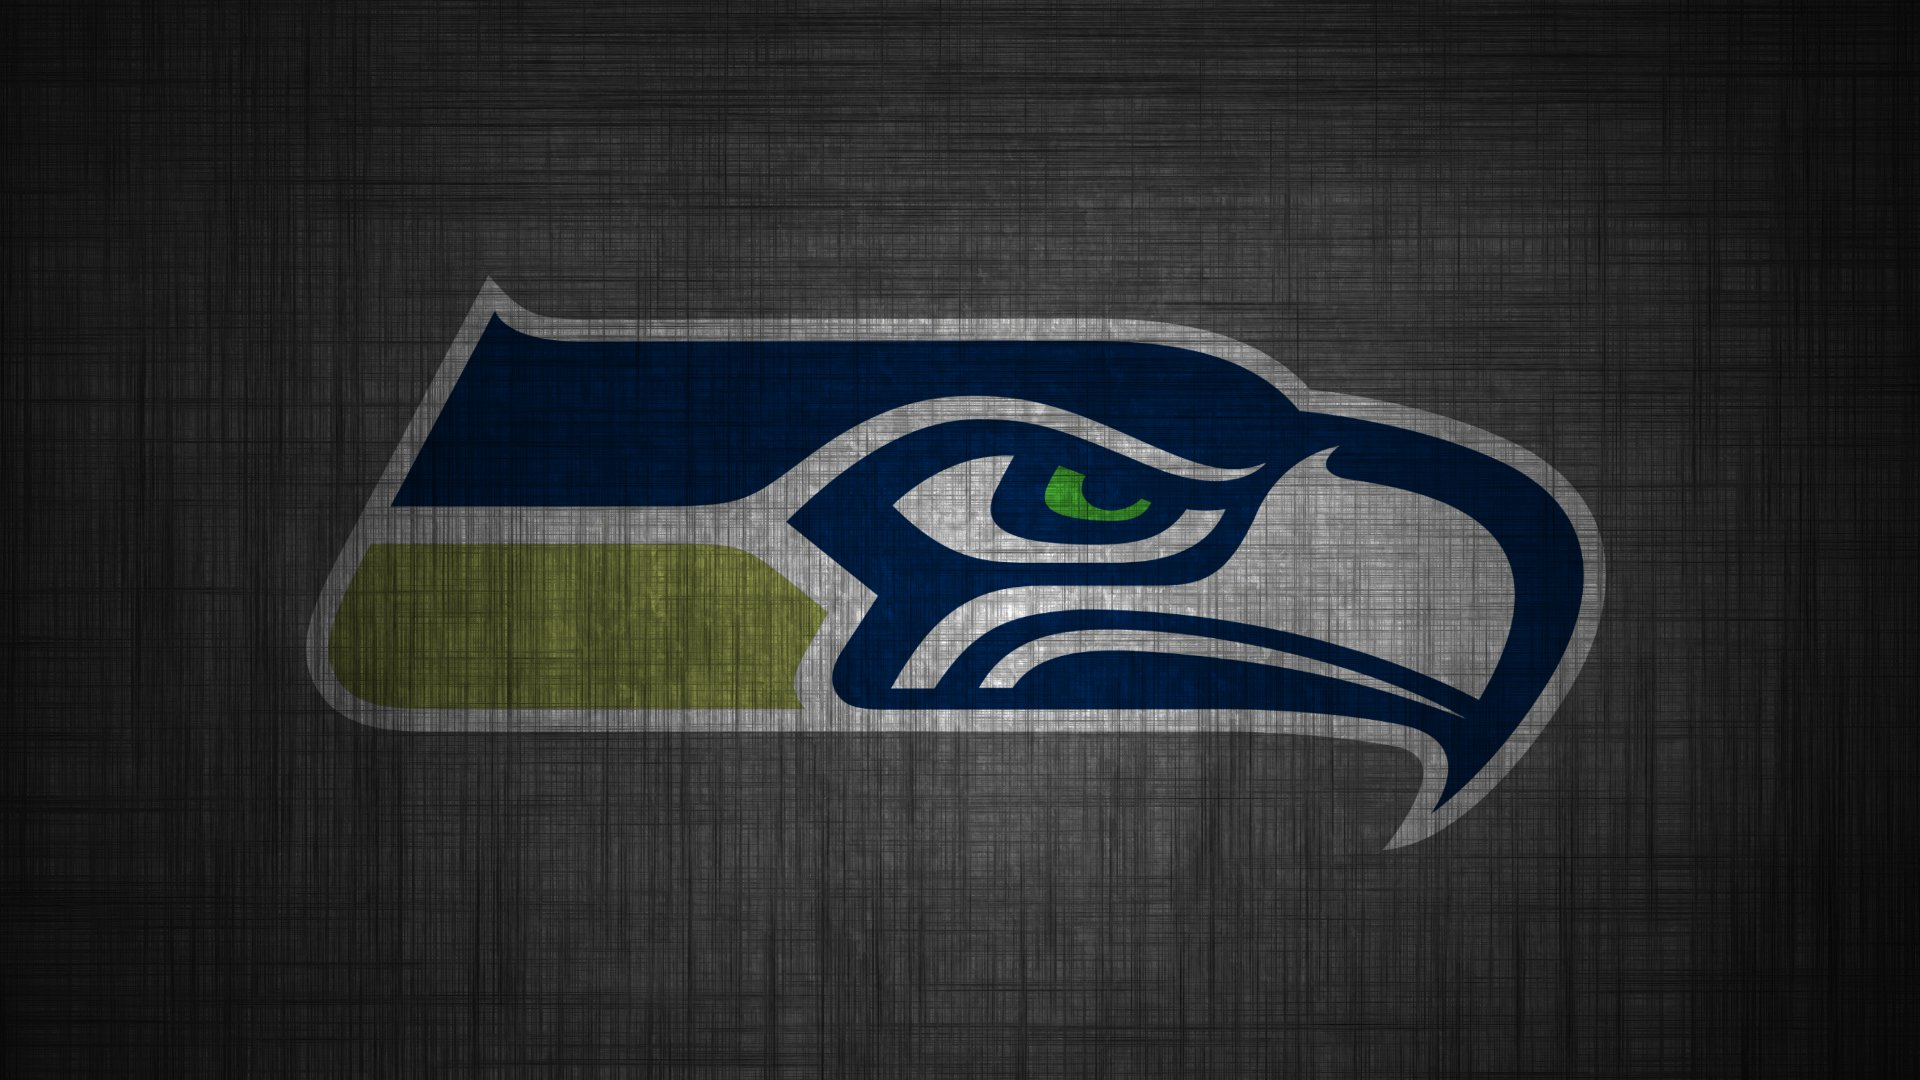 Seattle seahawks logo hd wallpaper 55980 1920x1080 px seattle seahawks logo hd wallpaper 55980 voltagebd Image collections